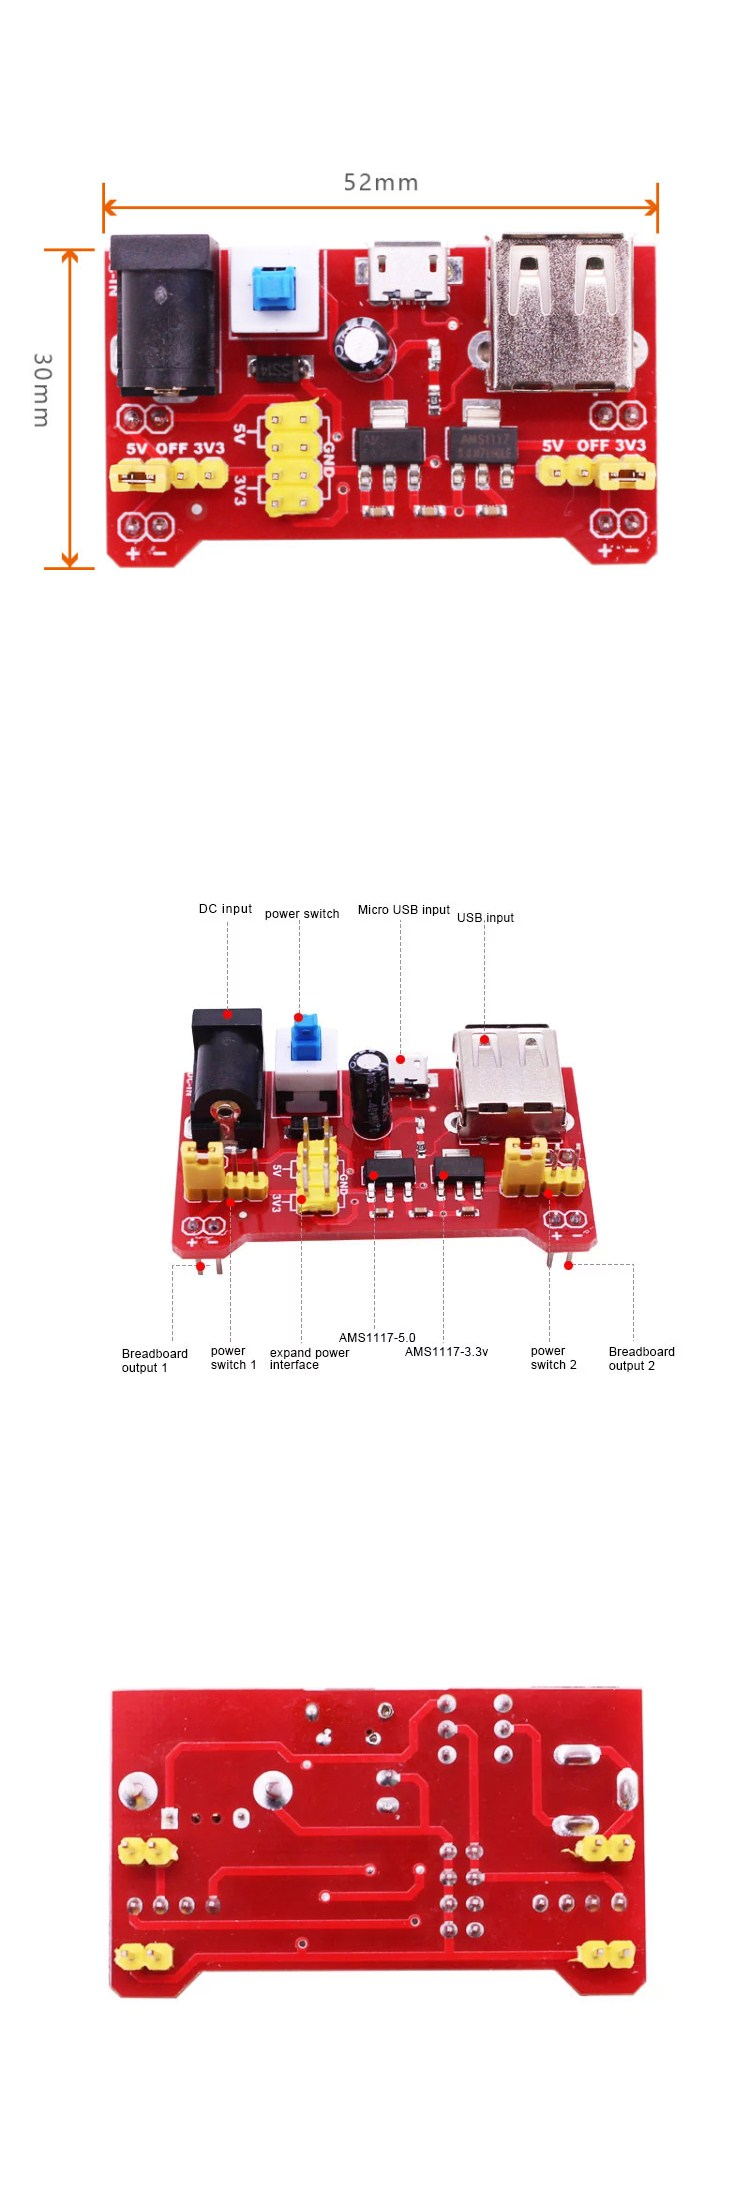 Breadboard Power Supply Board Module with MicroUSB Support 3.3V/5V Dual Voltage for Micro:bit